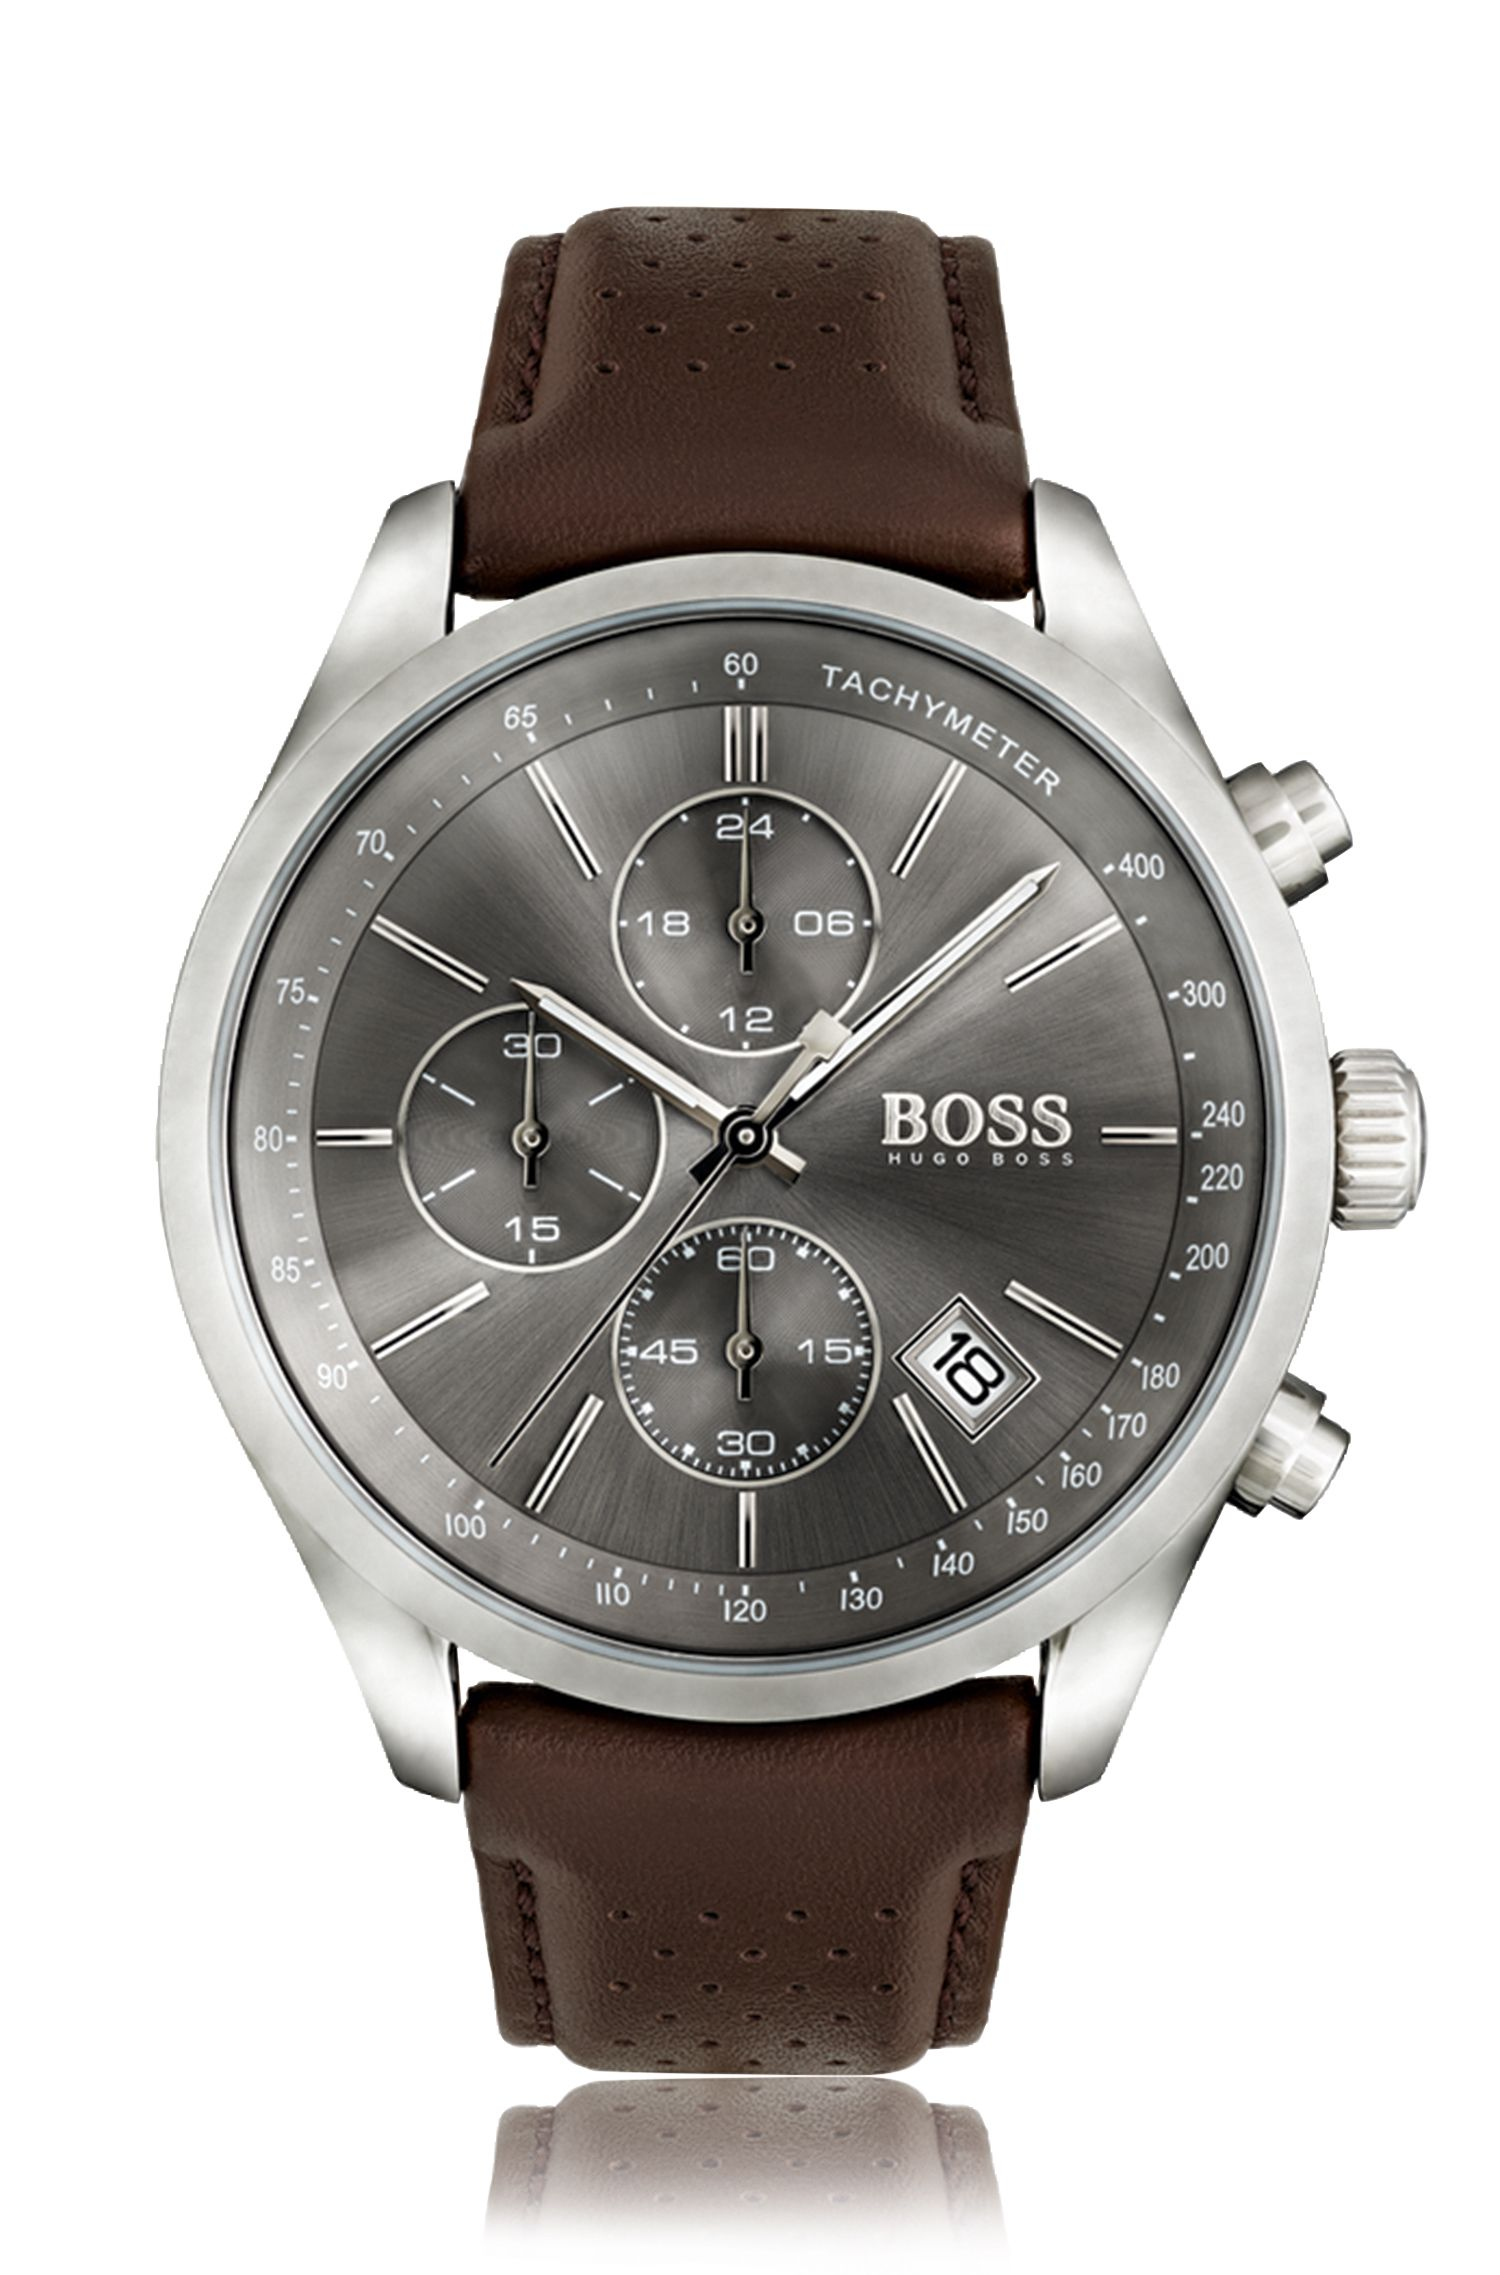 Stainless-steel sportswatch with grey sunray dial and perforated leather strap